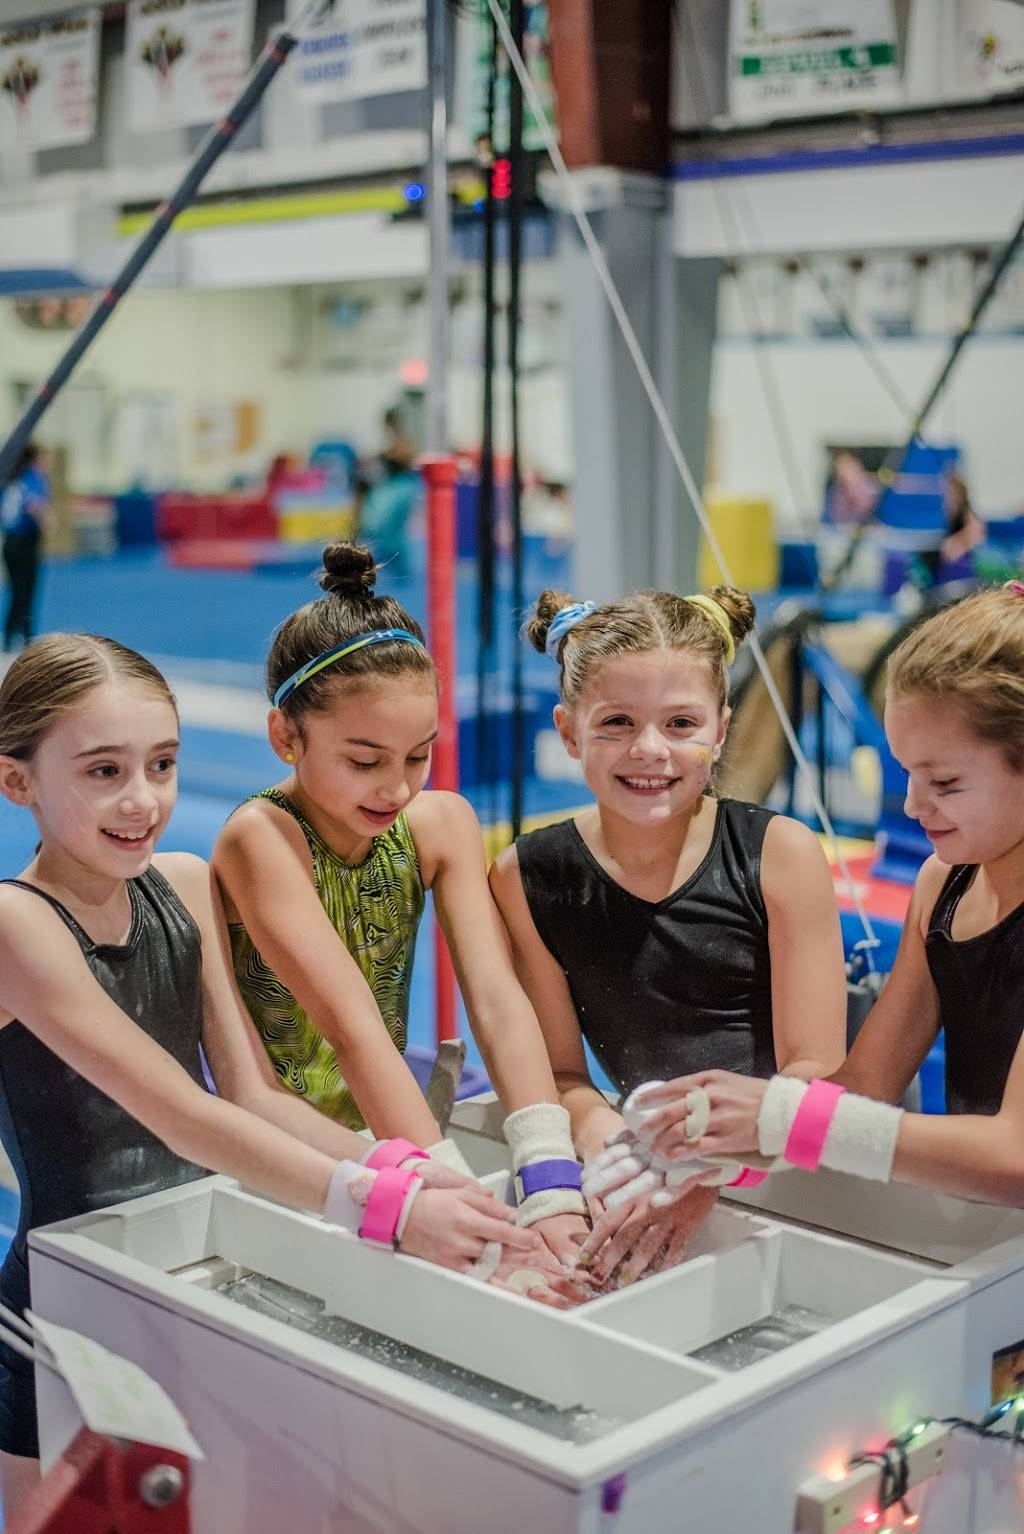 Greater Buffalo Gymnastics & Fitness Center - gym    Photo 9 of 9   Address: 1641 N French Rd, Getzville, NY 14068, USA   Phone: (716) 639-0020